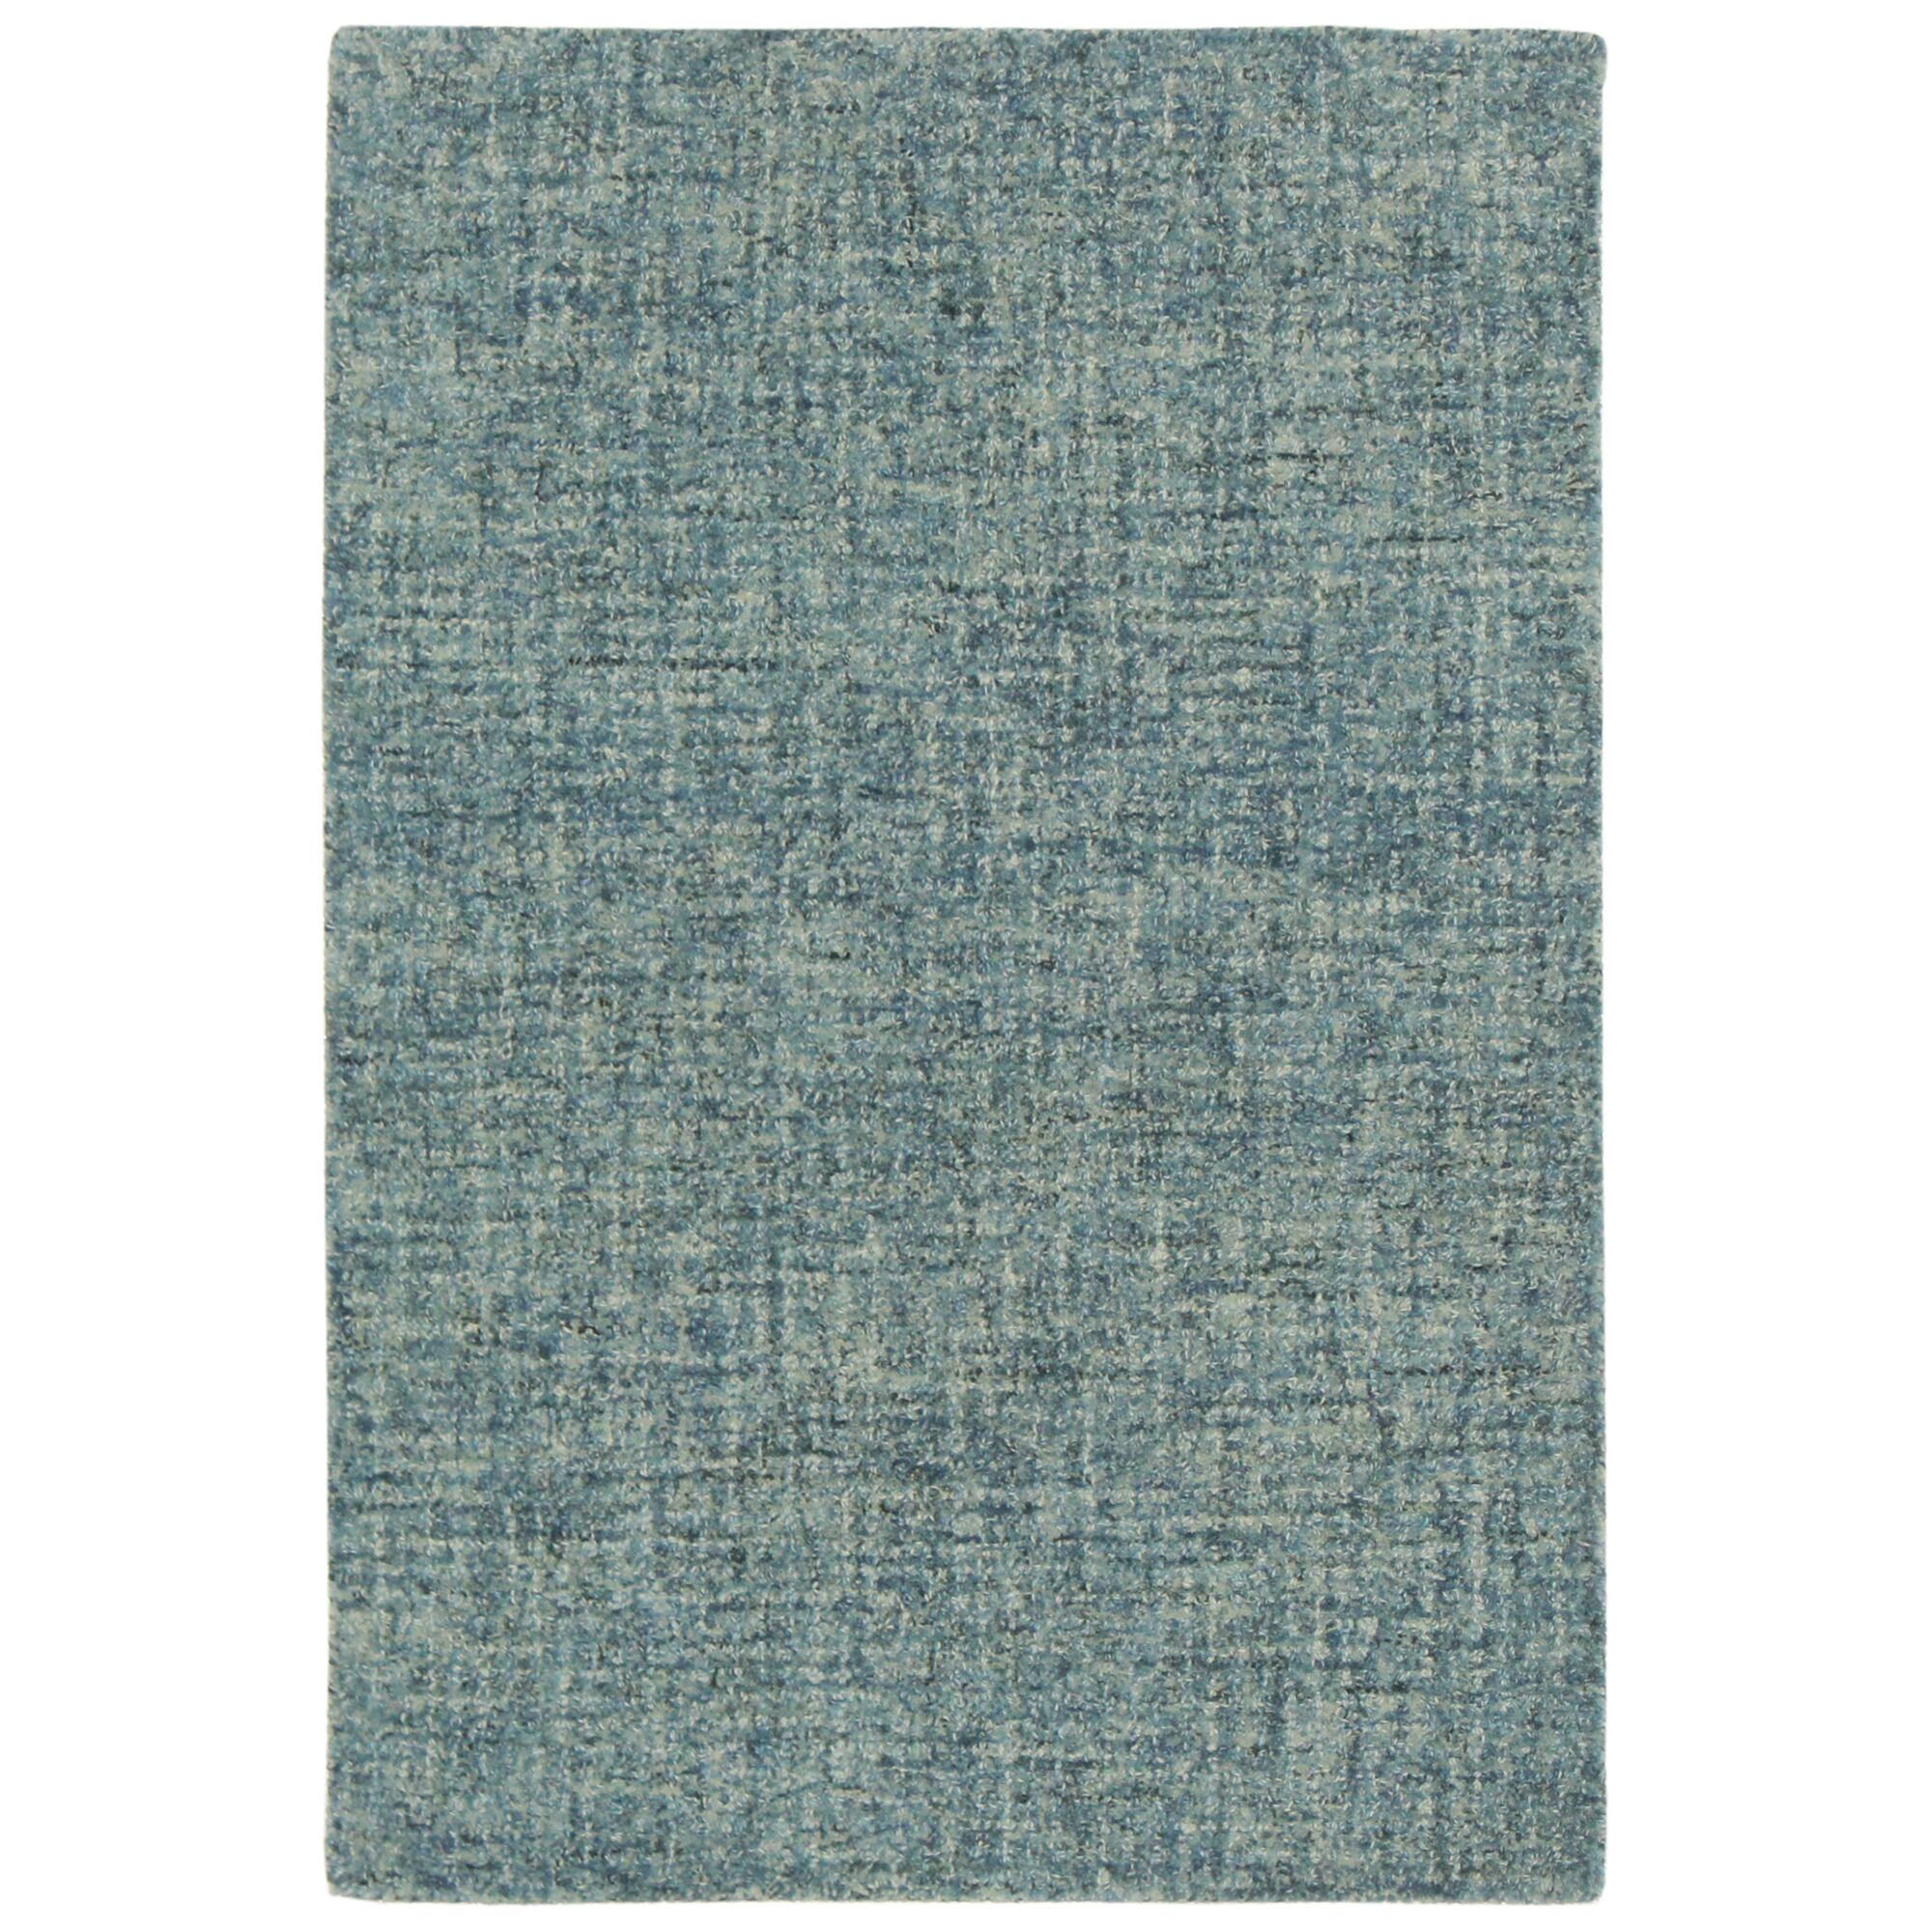 Hunsberger Hand-Woven Wool Blue Area Rug Rug Size: Rectangle 7'5